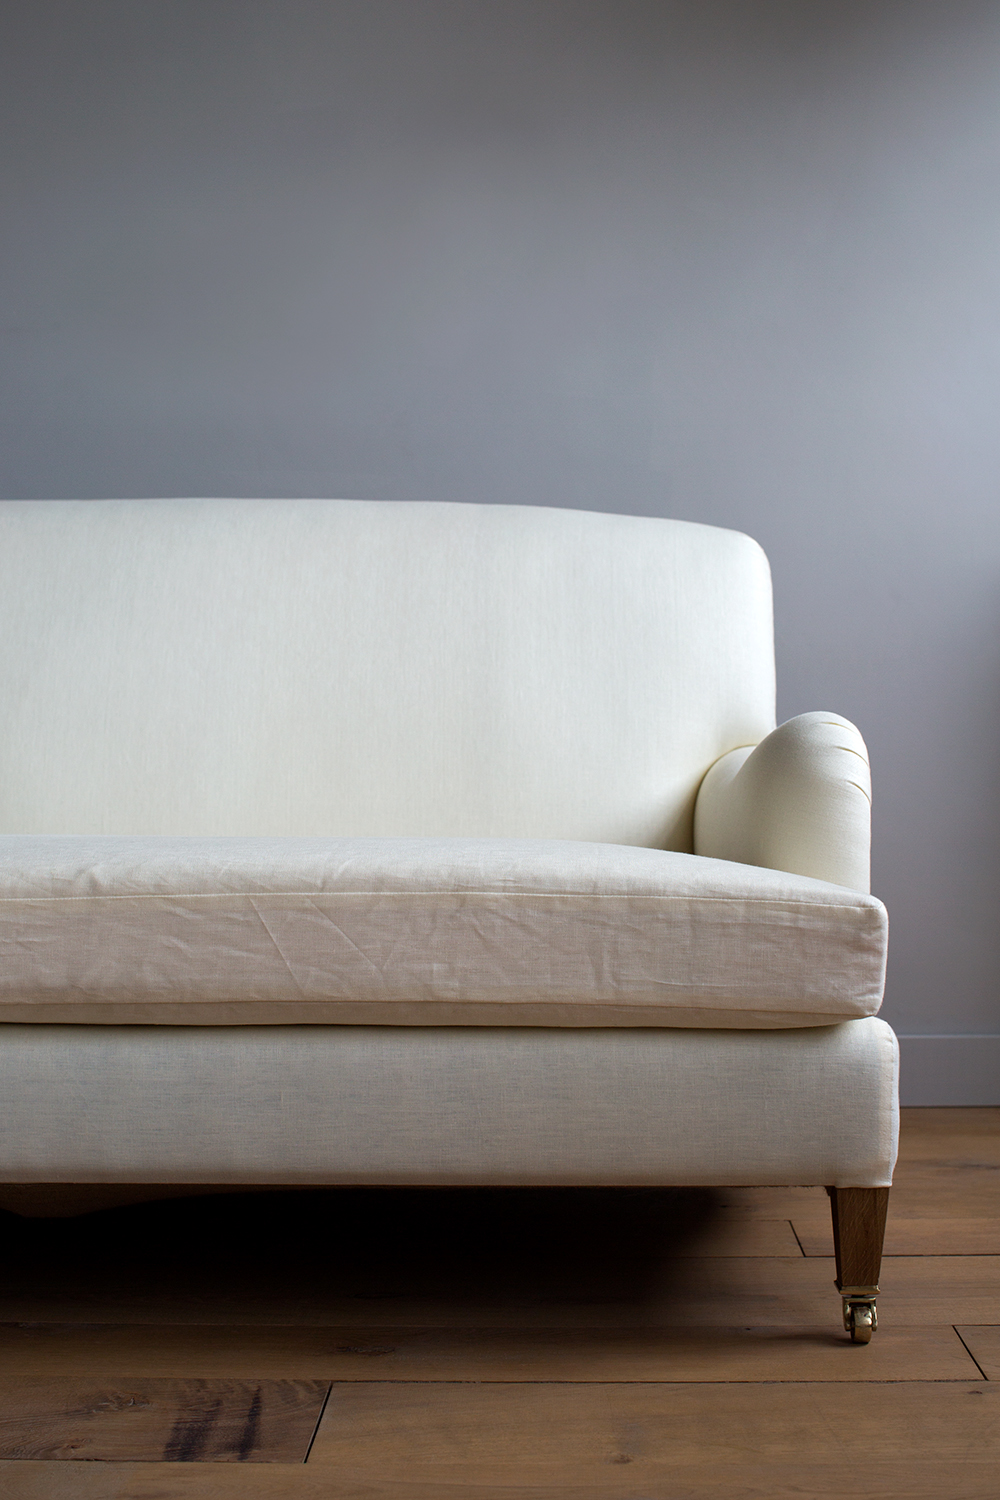 ATELIER ELLIS - THE FAMILY SOFA